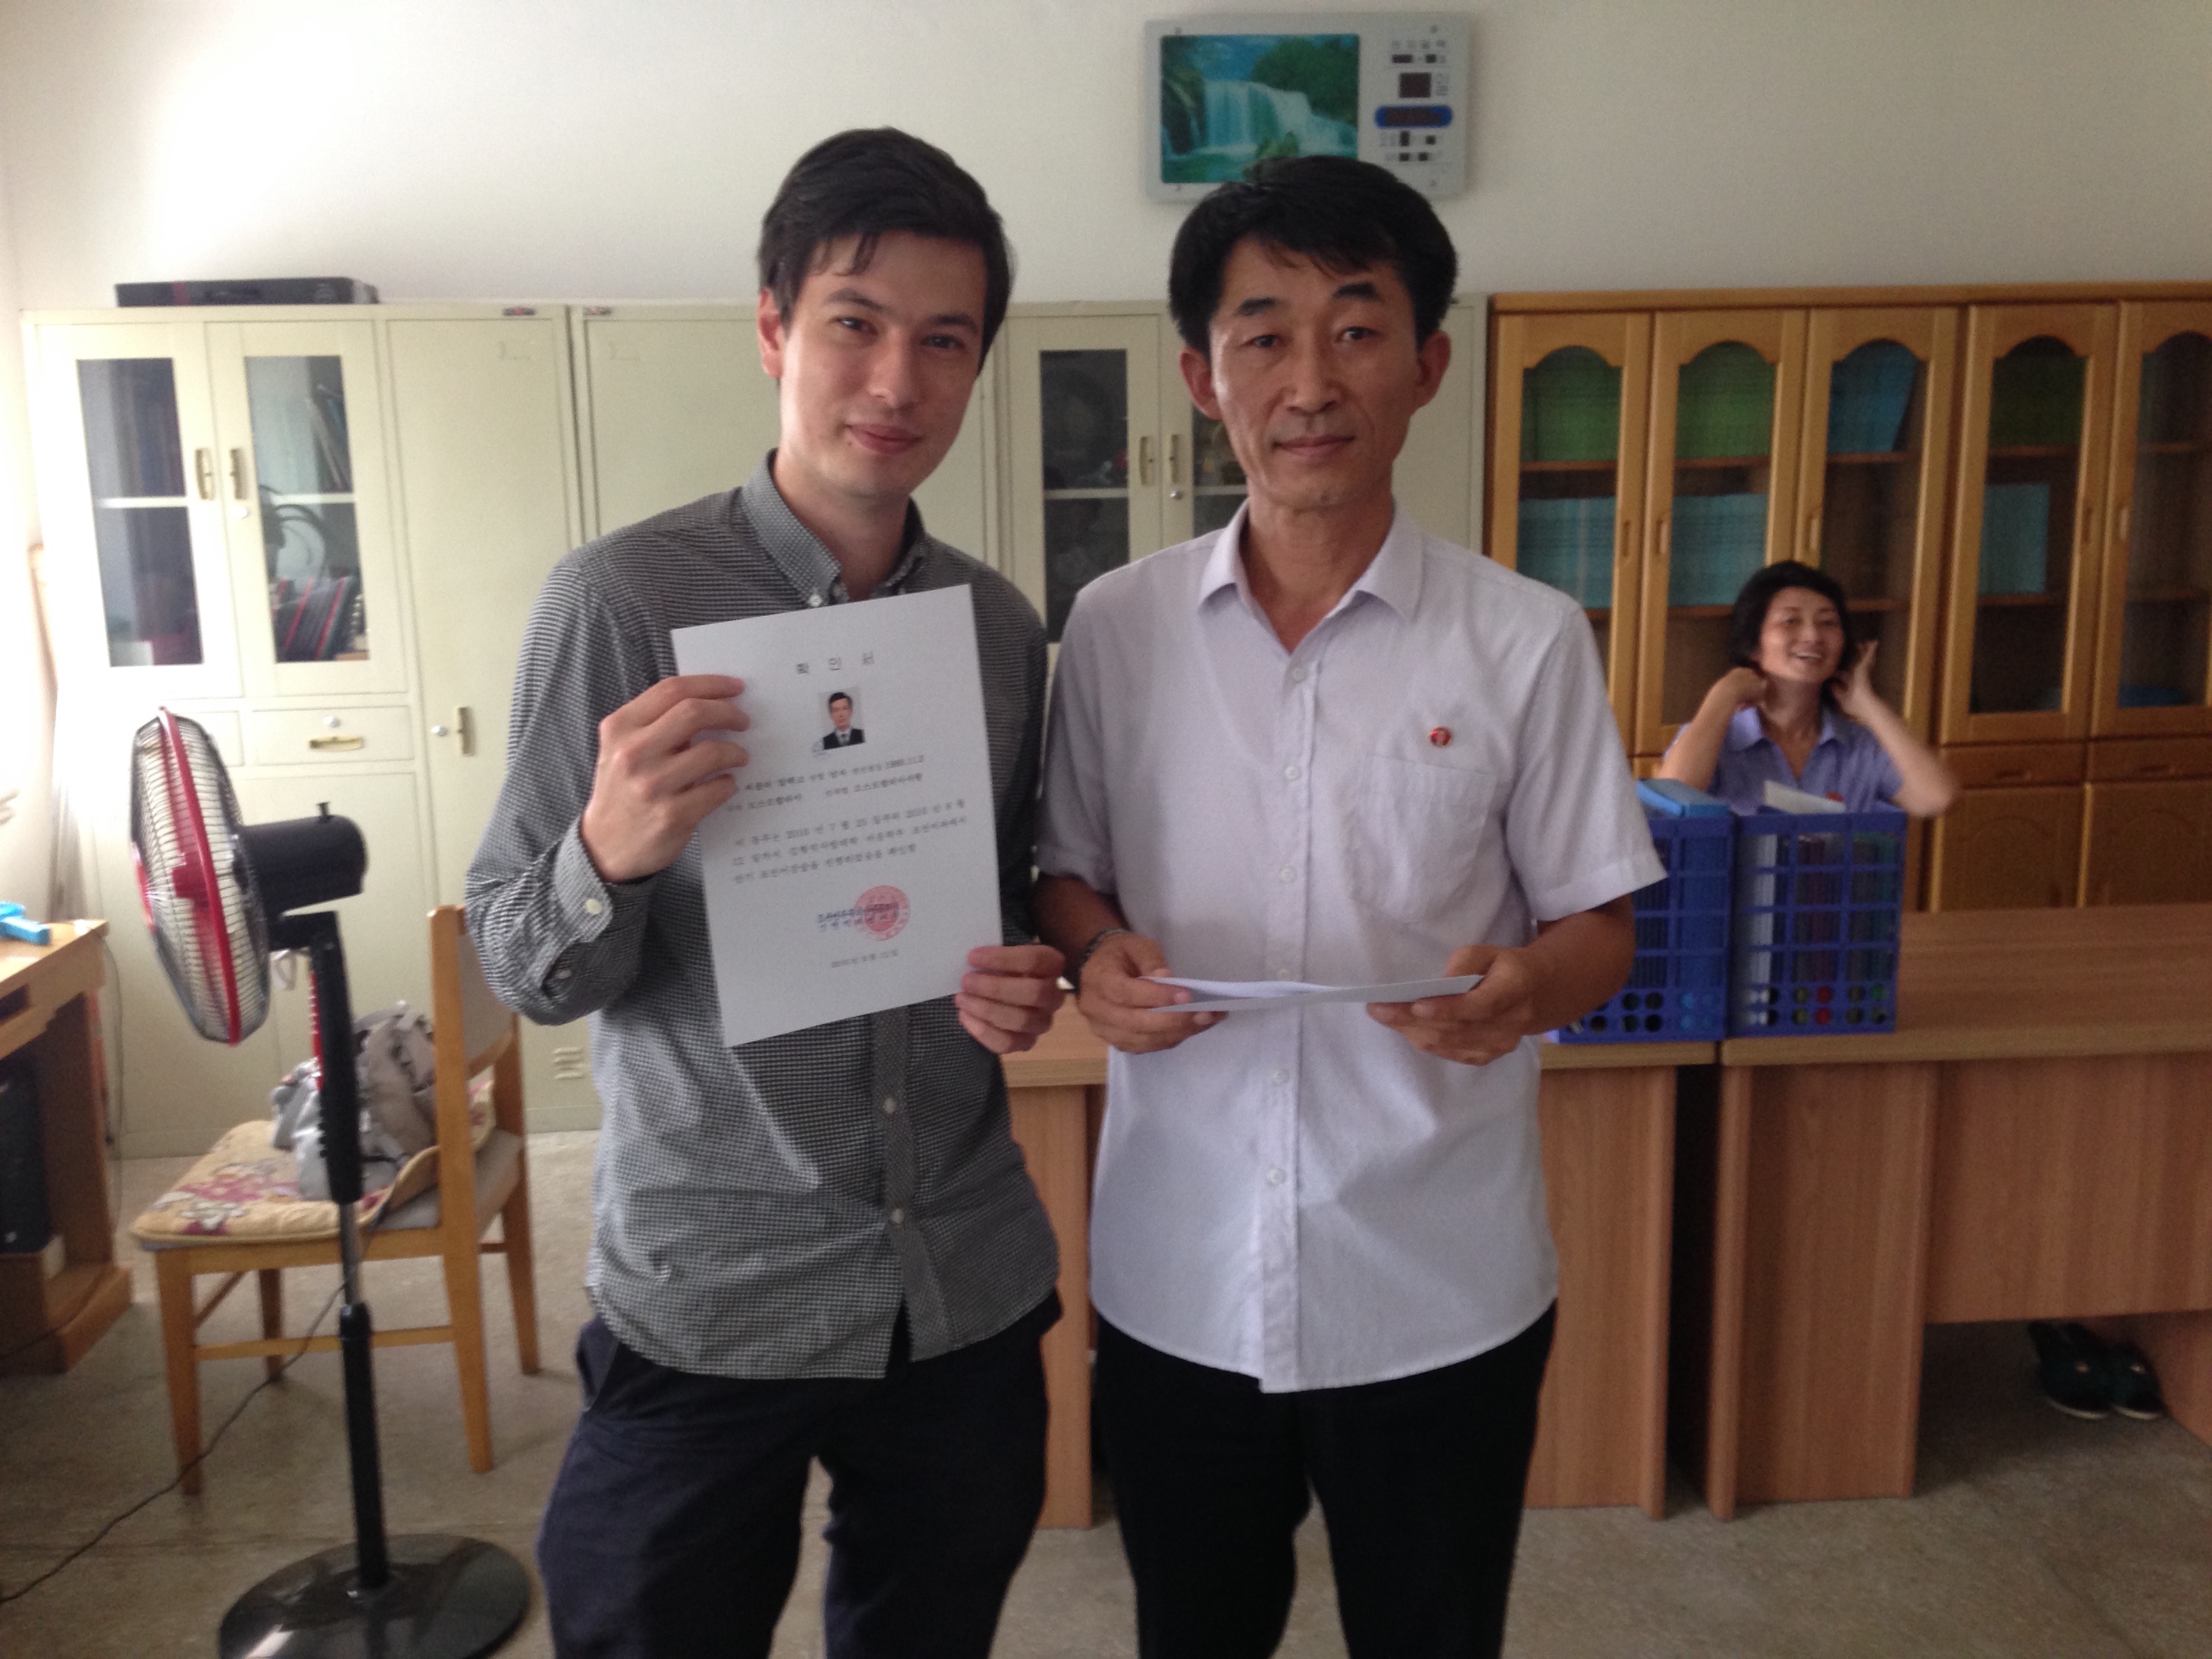 tongil tours learning languages in north korea nk news north